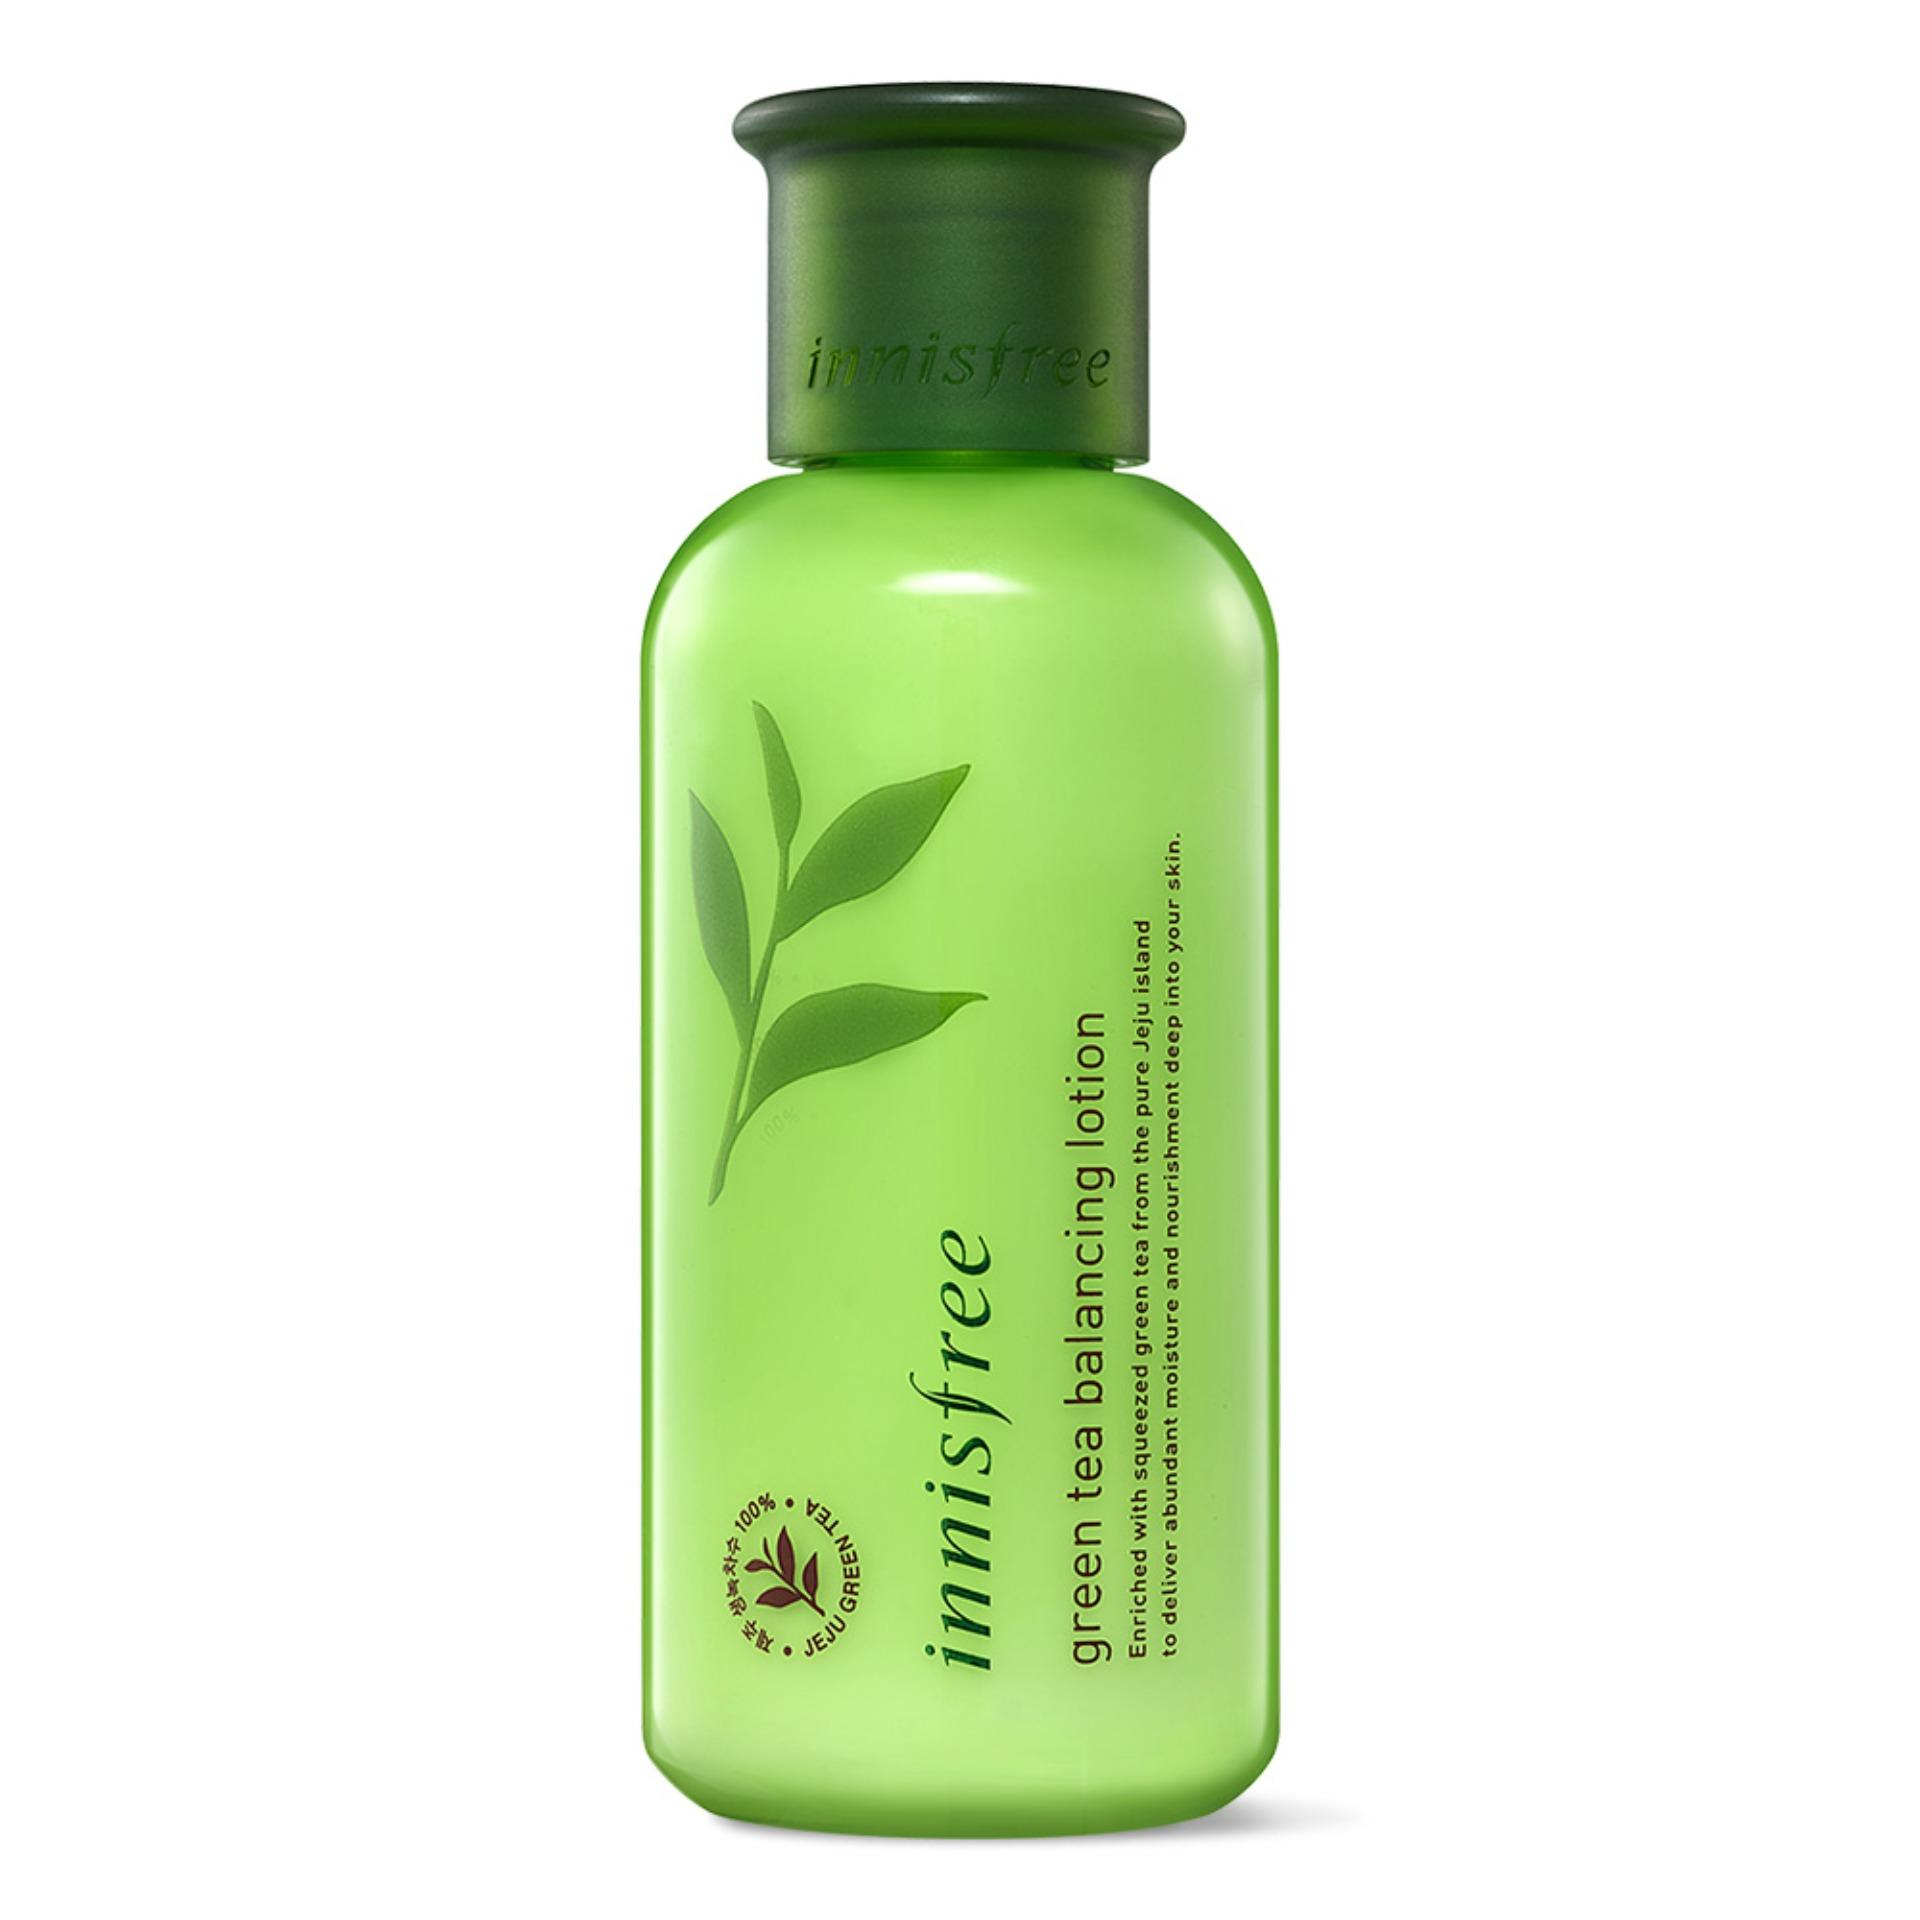 Compare Innisfree Green Tea Balancing Lotion 160Ml